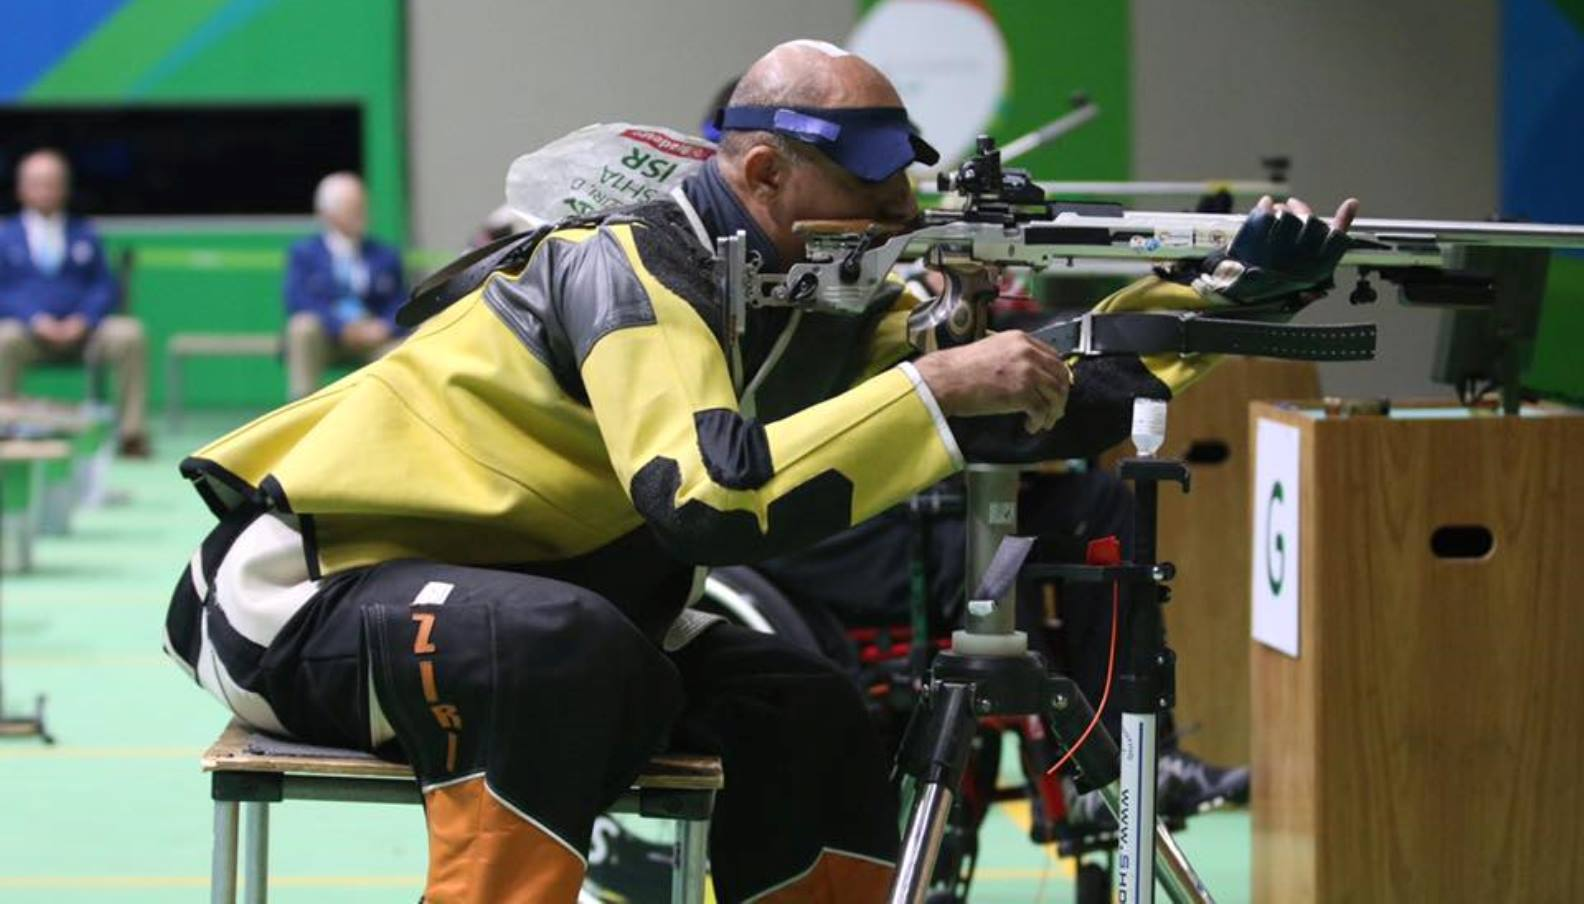 Doron Shaziri in the men's 50-meter rifle three-position final on Monday, September 12. Photo by Keren Isaacson